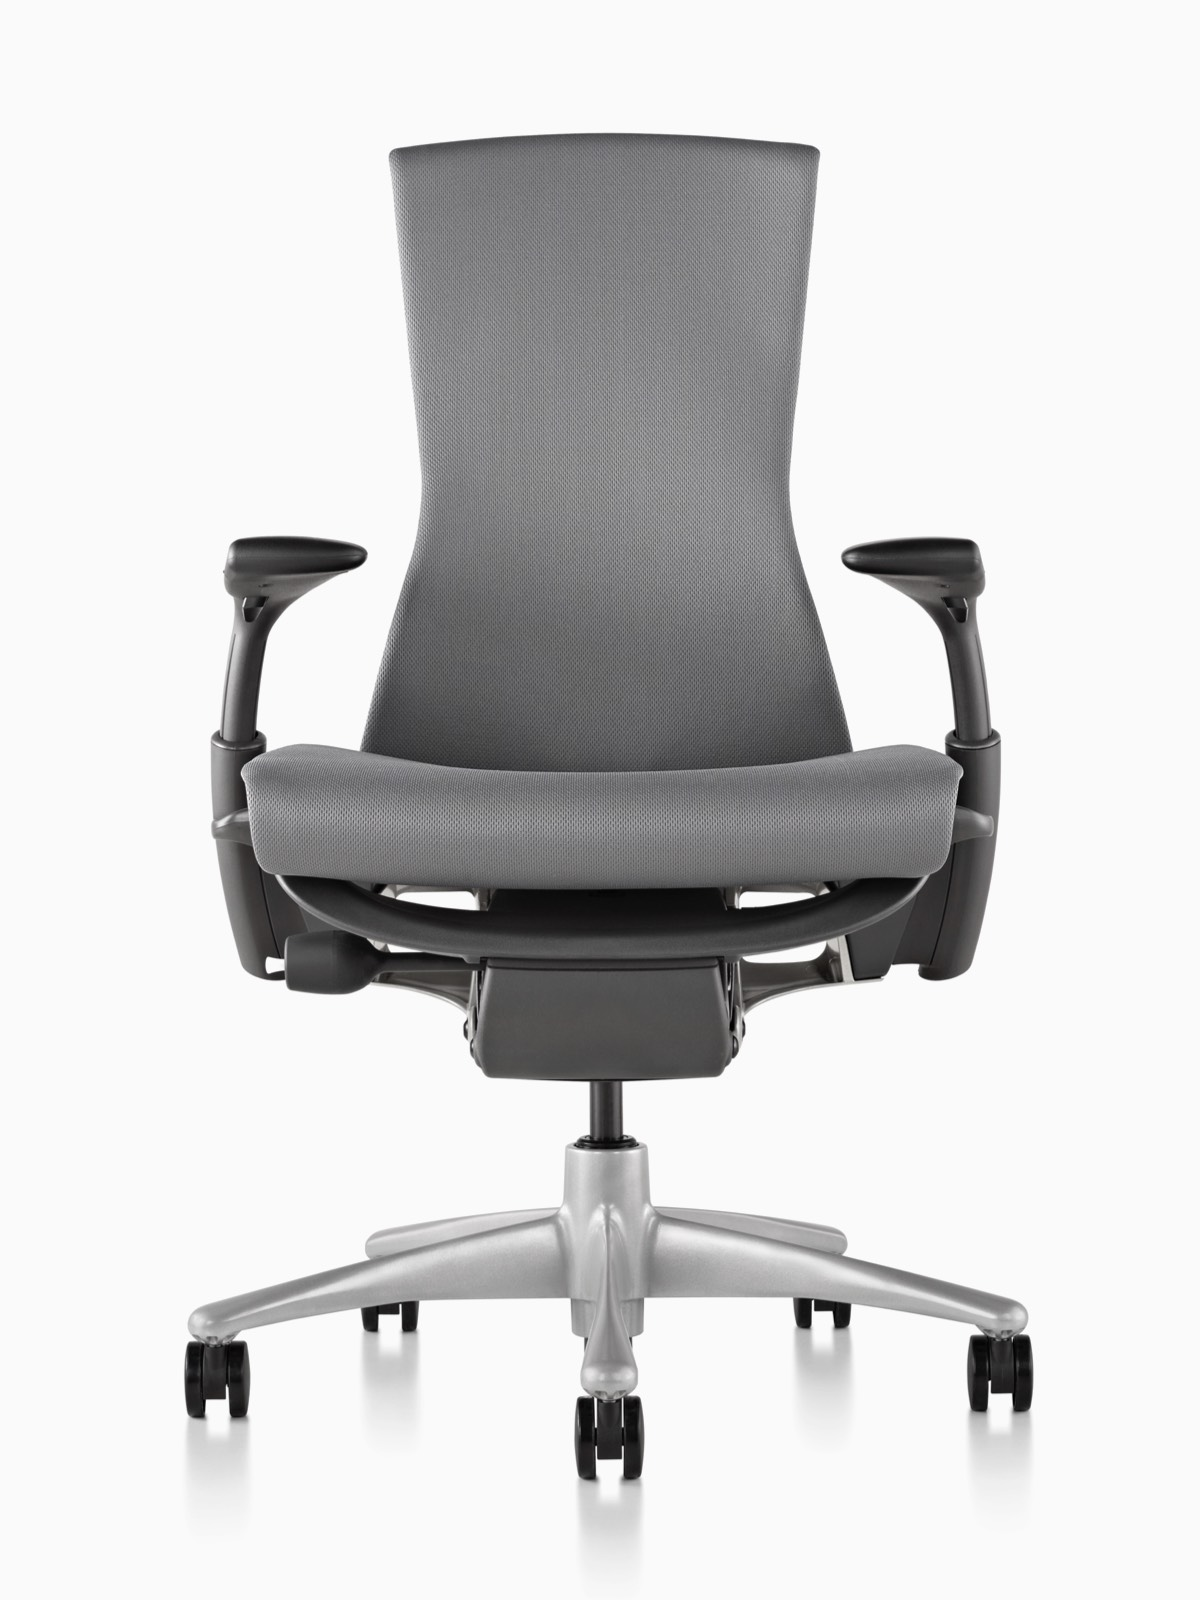 Embody Design Story fice Chair Herman Miller